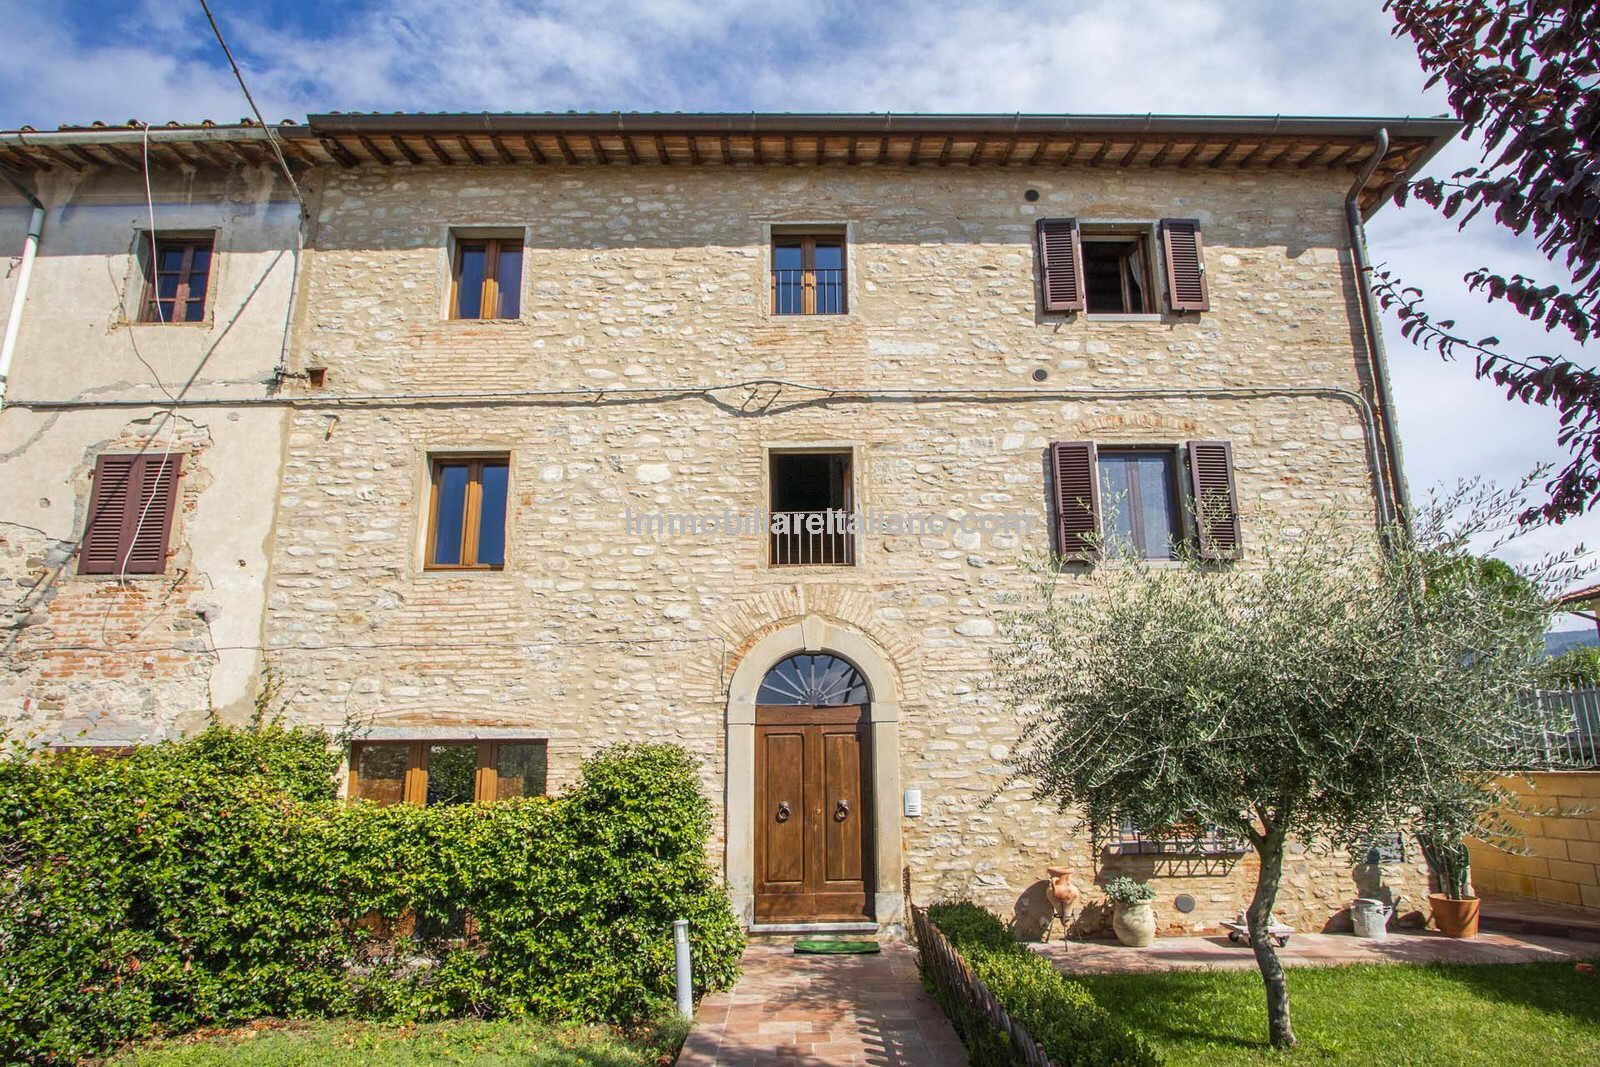 Guest house for sale in Tuscany